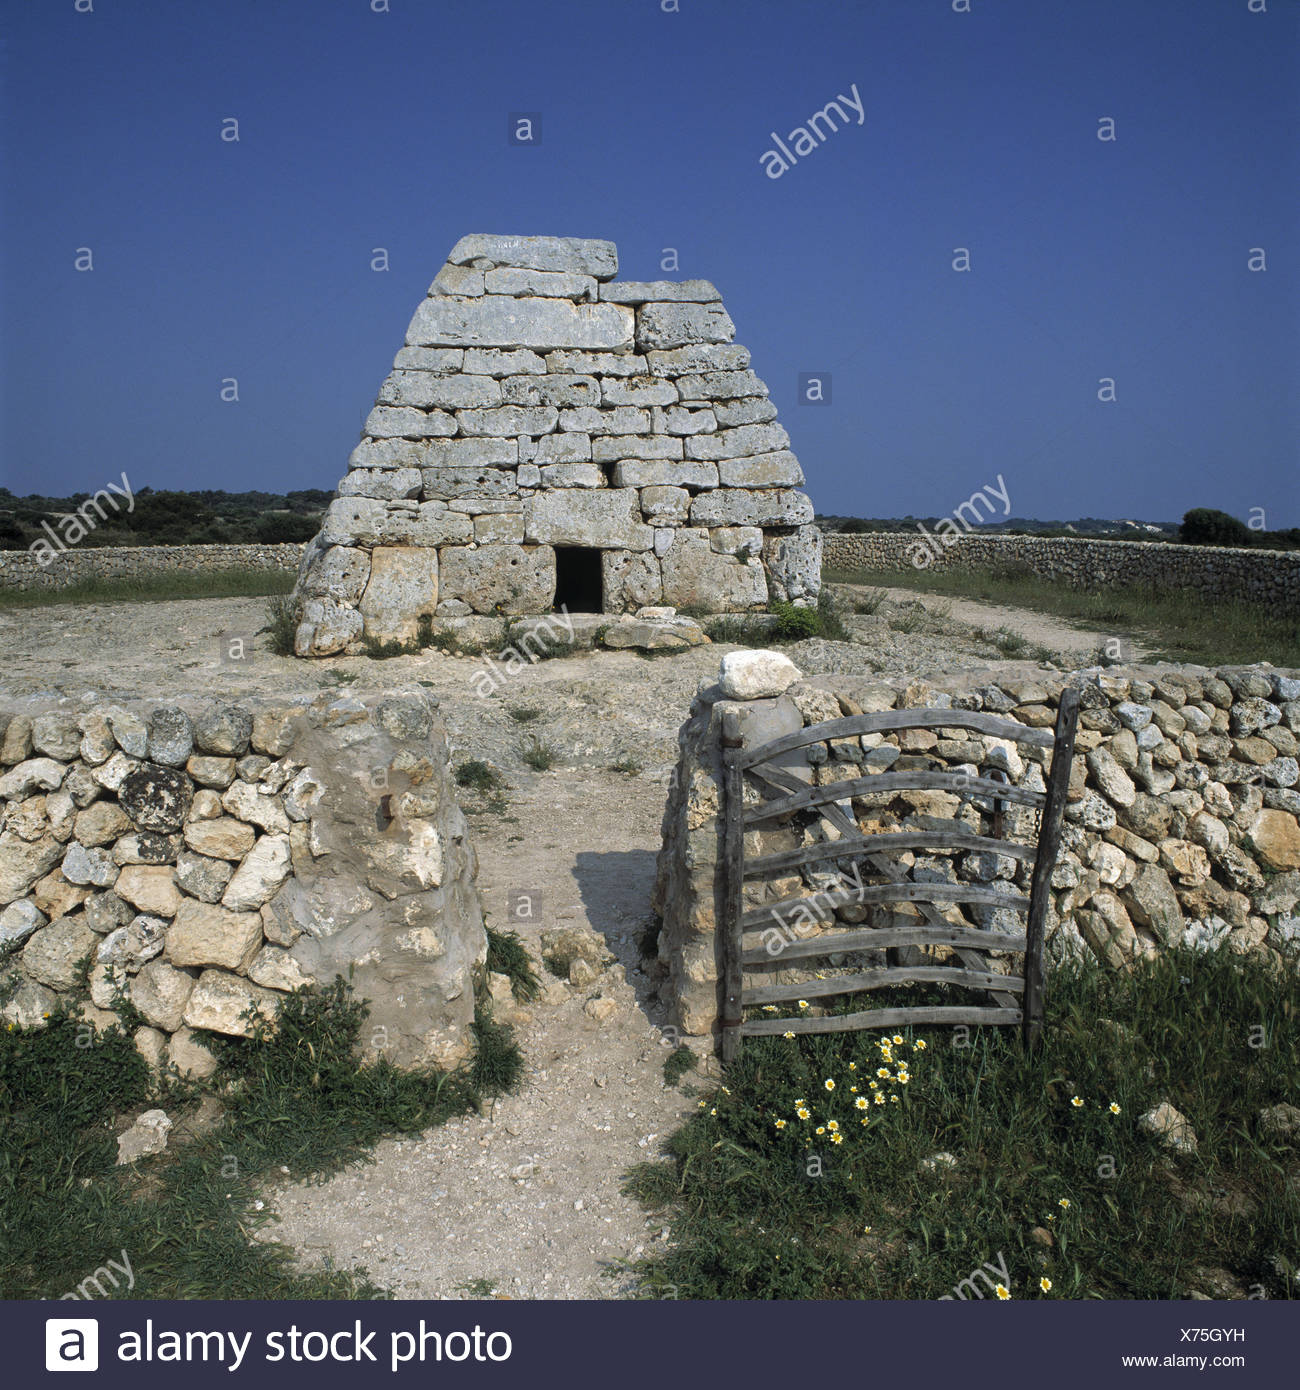 Spain, island Menorca, Nau d'es Tudons, tomb Europe, the Balearic Islands, Balearic Islands island, Naveta d'es Tudons, tomb, prehistorically, structure, sandstone ashlar, burial chamber, culture, place of interest, - Stock Image